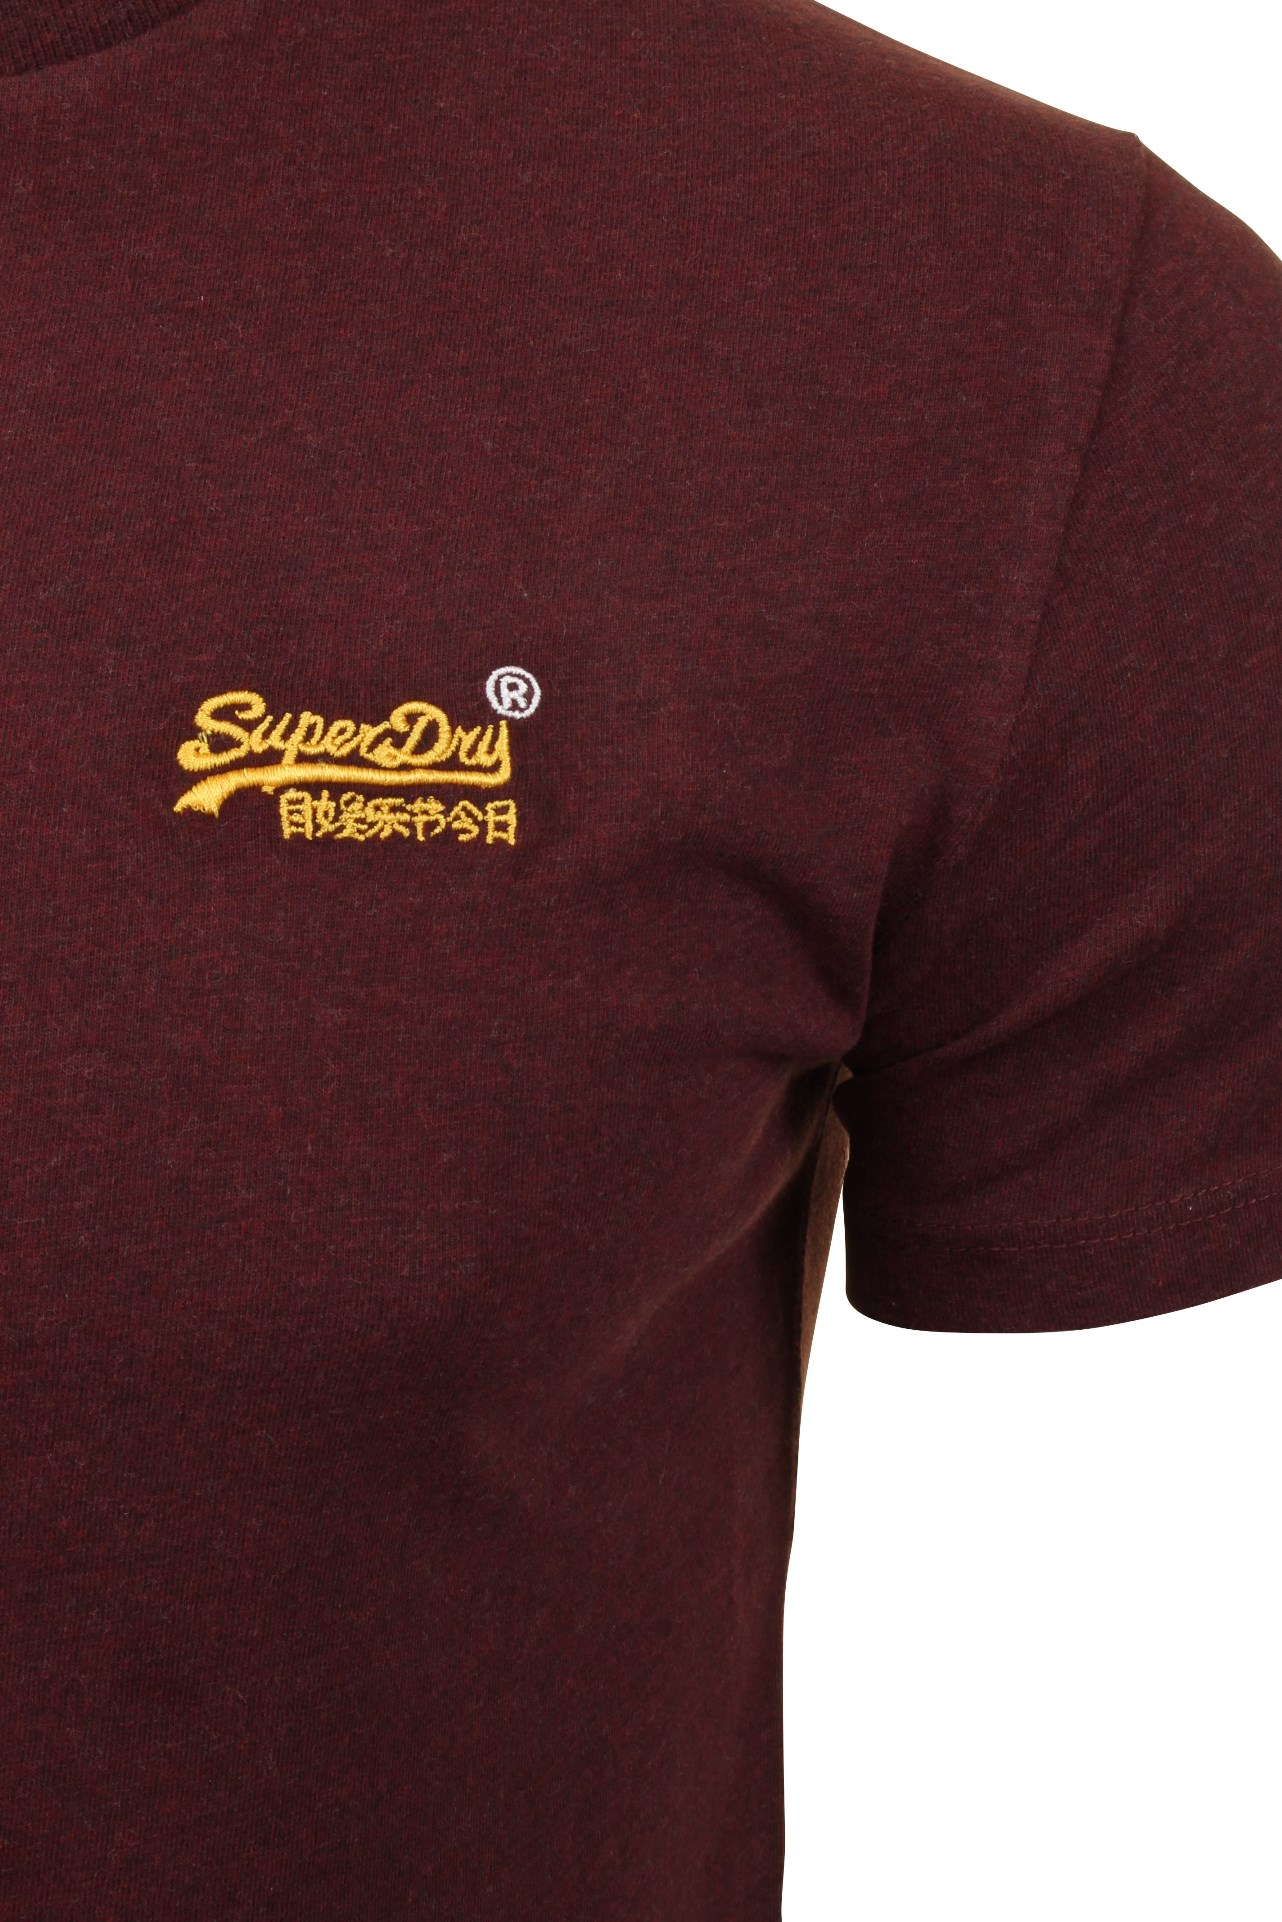 Superdry-Mens-T-Shirt-039-OL-Vintage-Embroidery-Tee-039-Short-Sleeved thumbnail 4